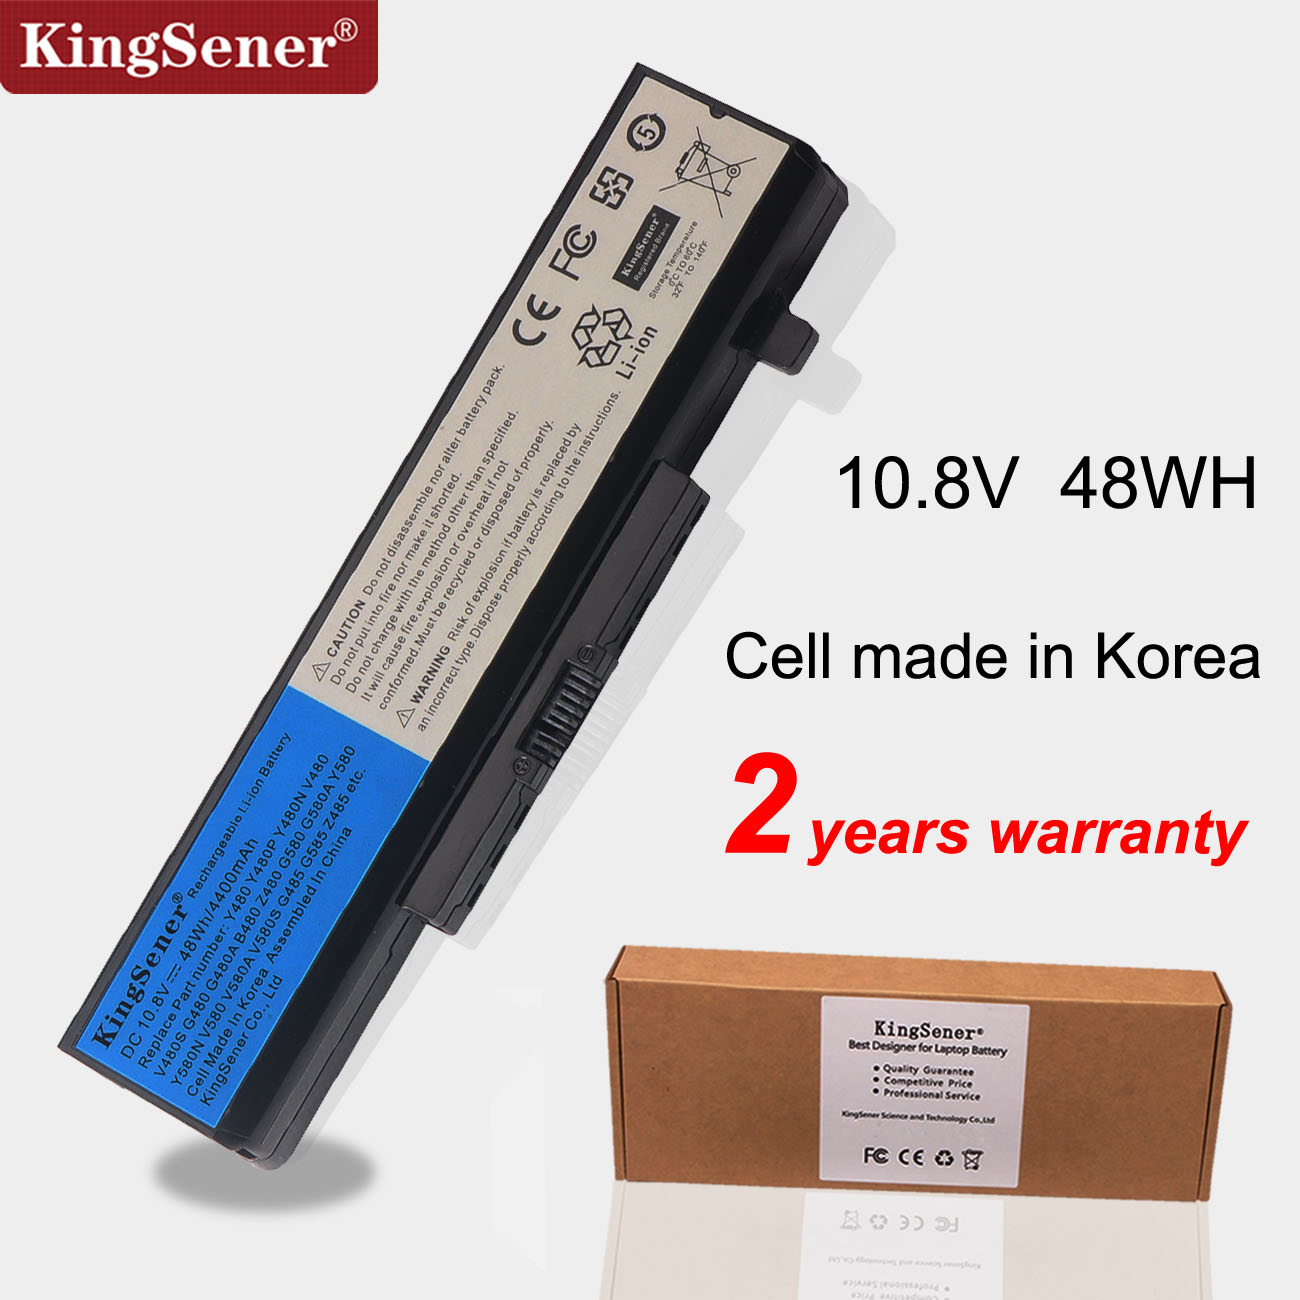 Kingsener 6 Cells Laptop Battery for <font><b>Lenovo</b></font> IdeaPad Y480 Y580 G480 G580 G580AM Z380AM Z480 Z580 Z585 V480 <font><b>V580</b></font> L11S6Y01 L11L6Y01 image